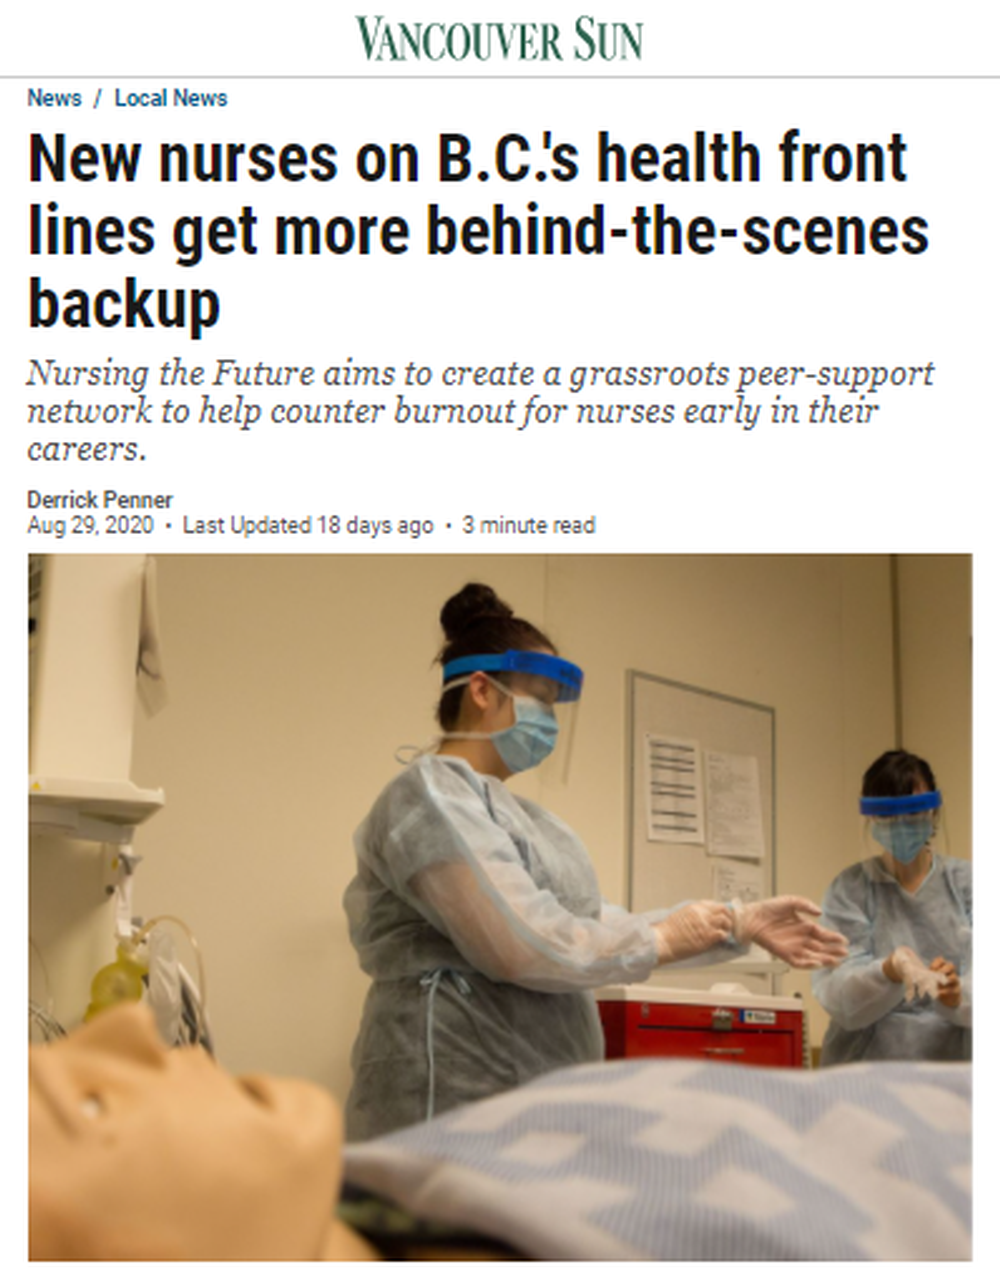 New-nurses-on-B-C-s-front-lines-get-behind-the-scenes-backup-Vancouver-Sun.